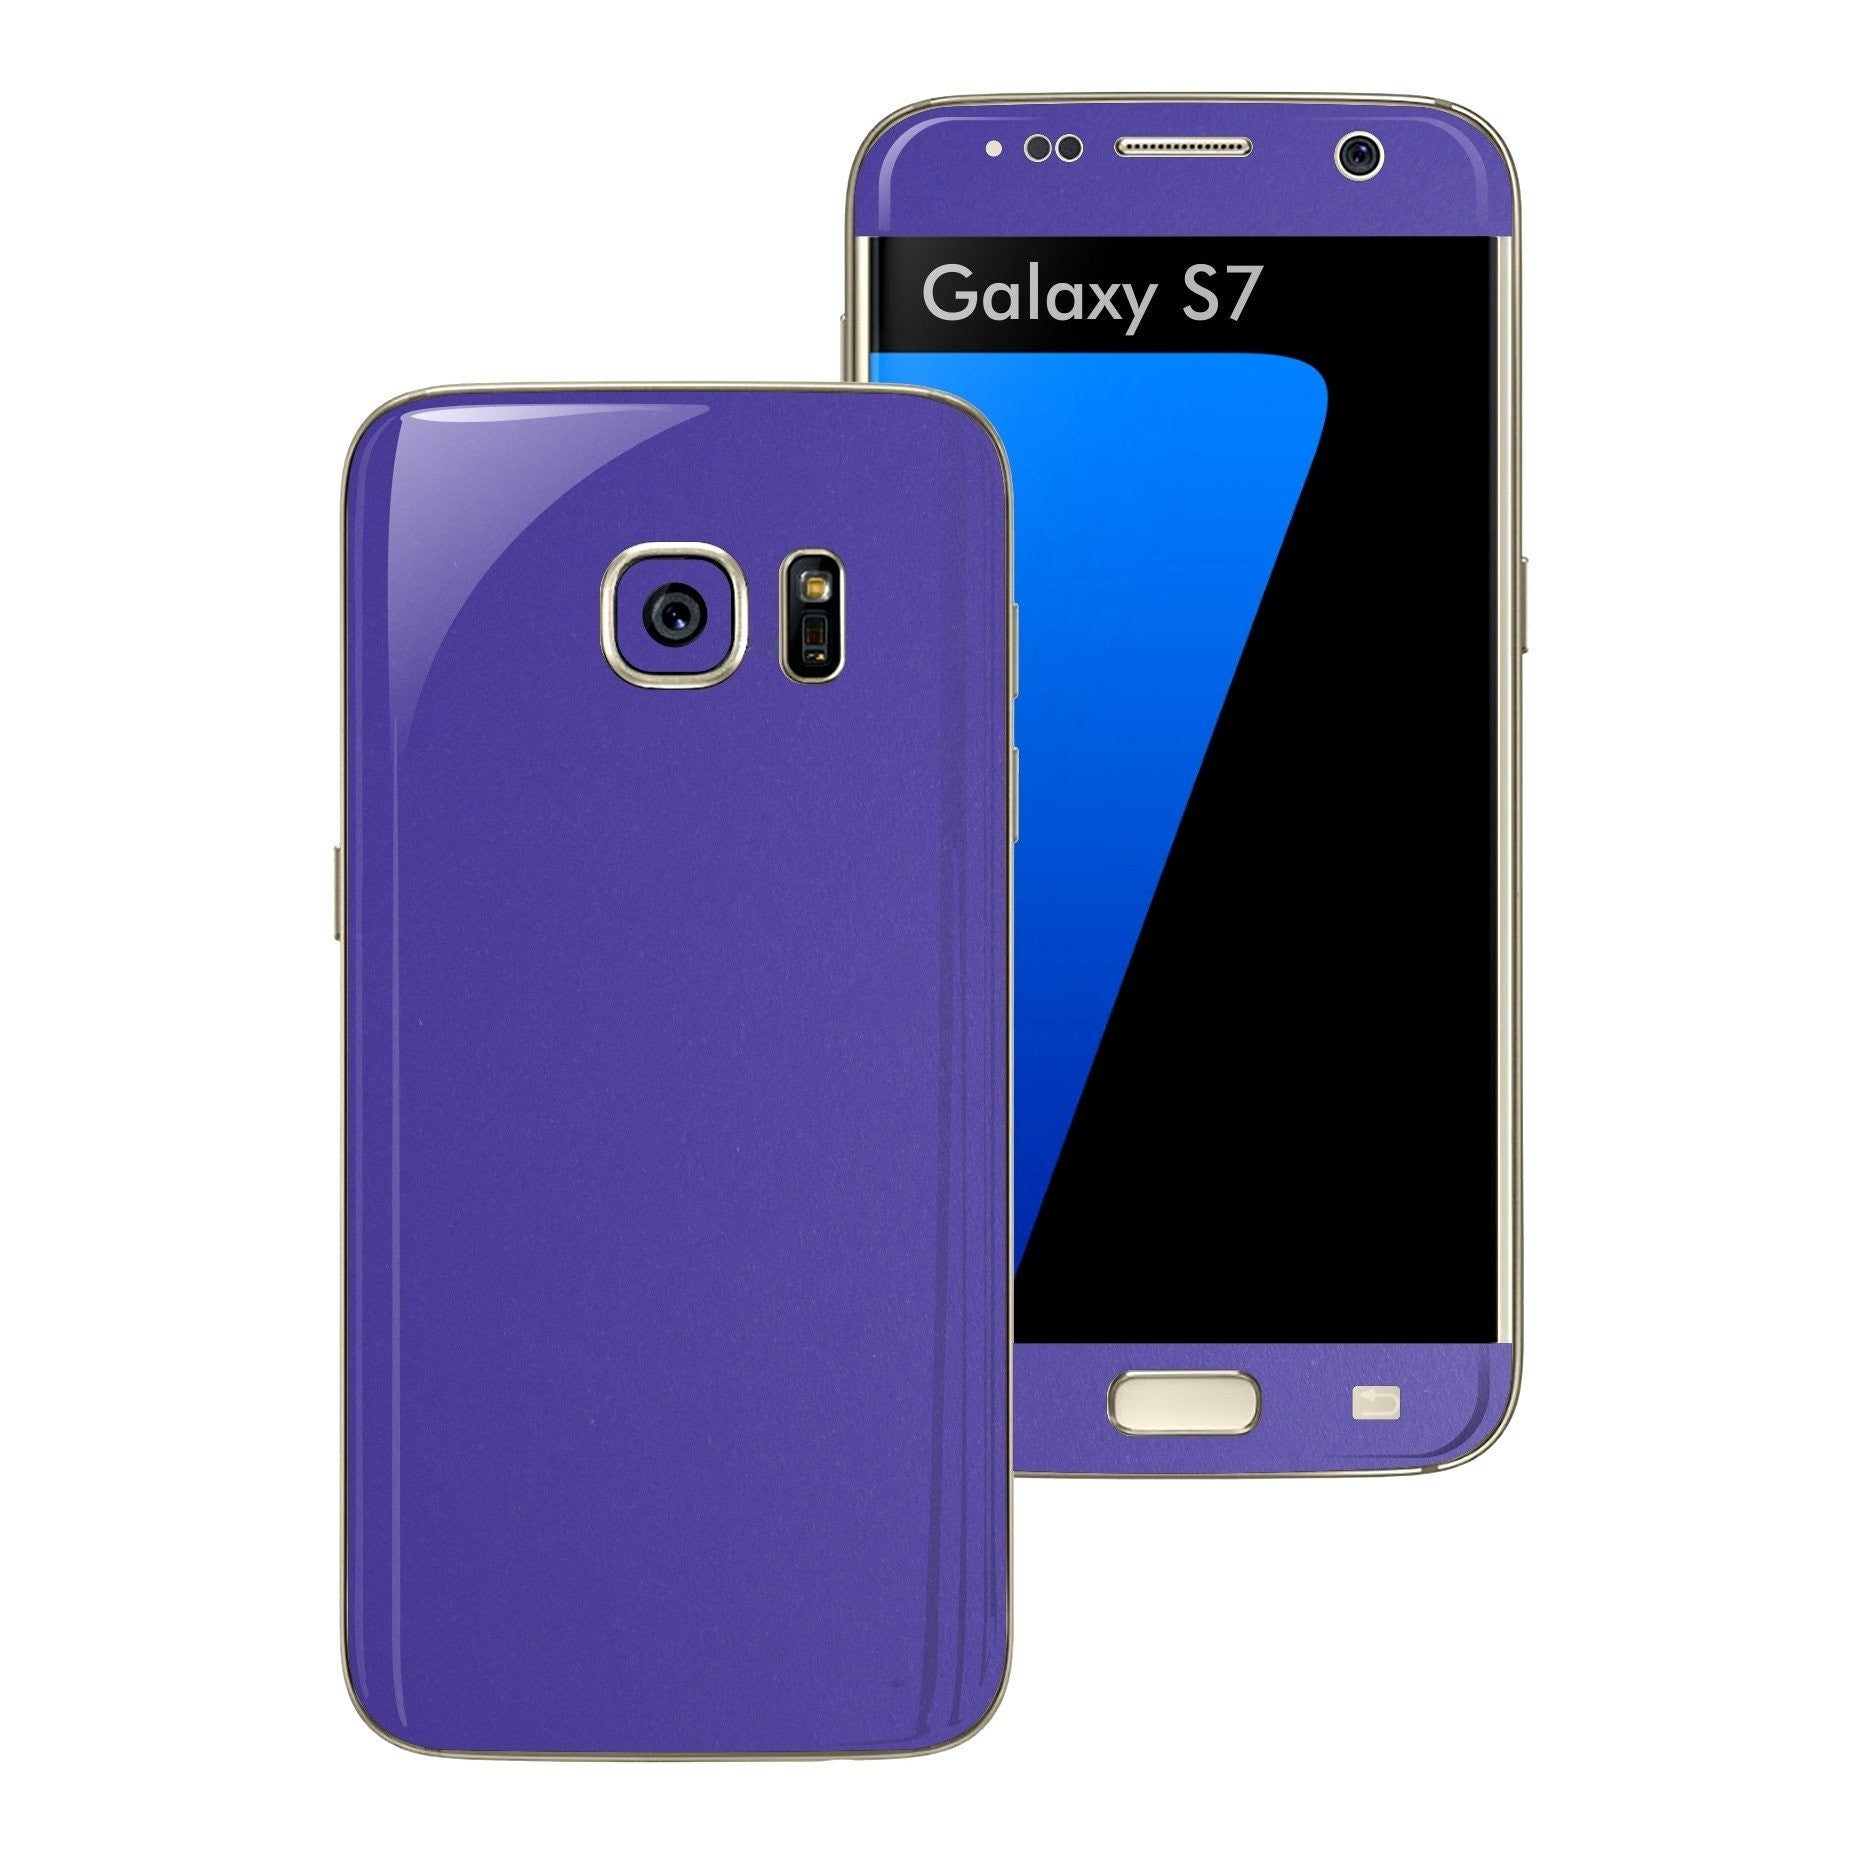 Samsung Galaxy S7 3M Royal Purple Matt Skin Wrap Decal Sticker Cover Protector by EasySkinz